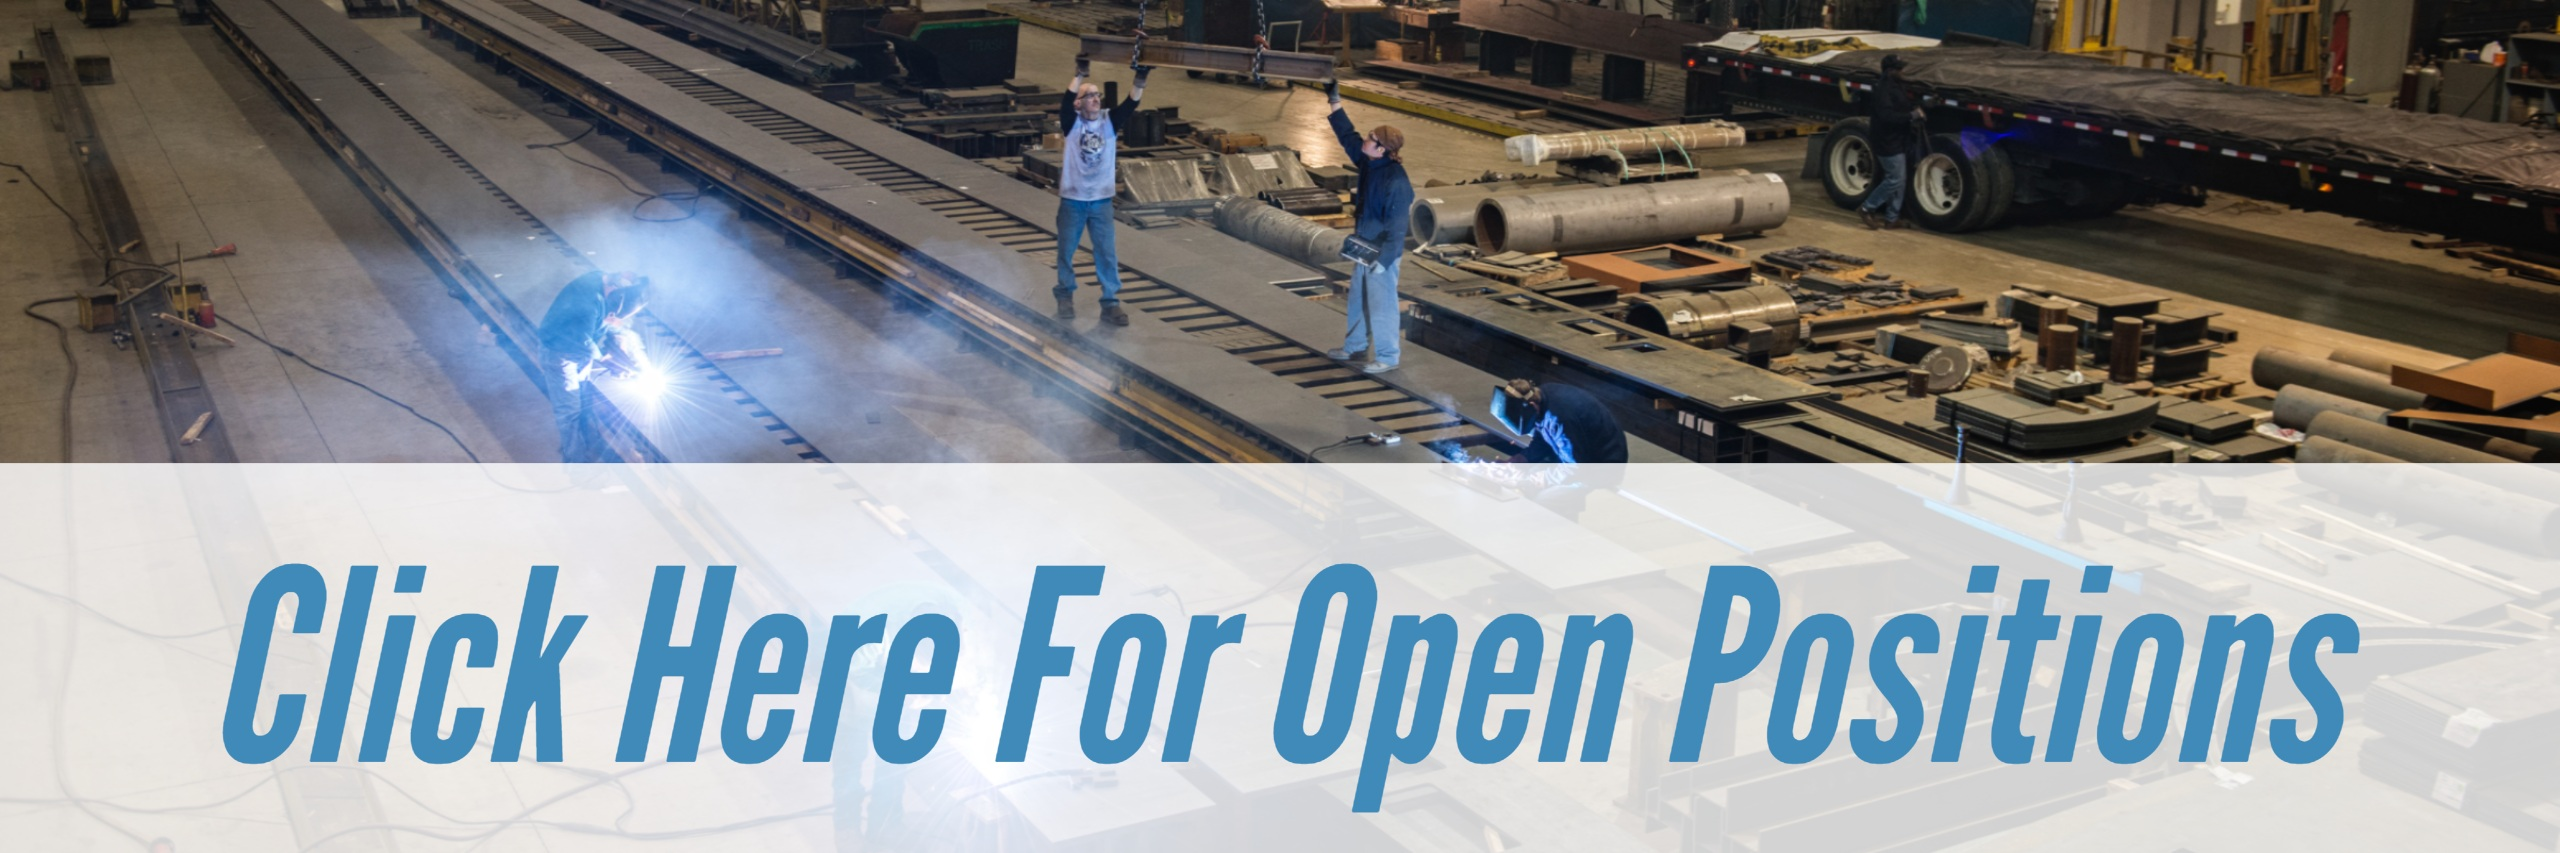 Whiting is hiring open positions